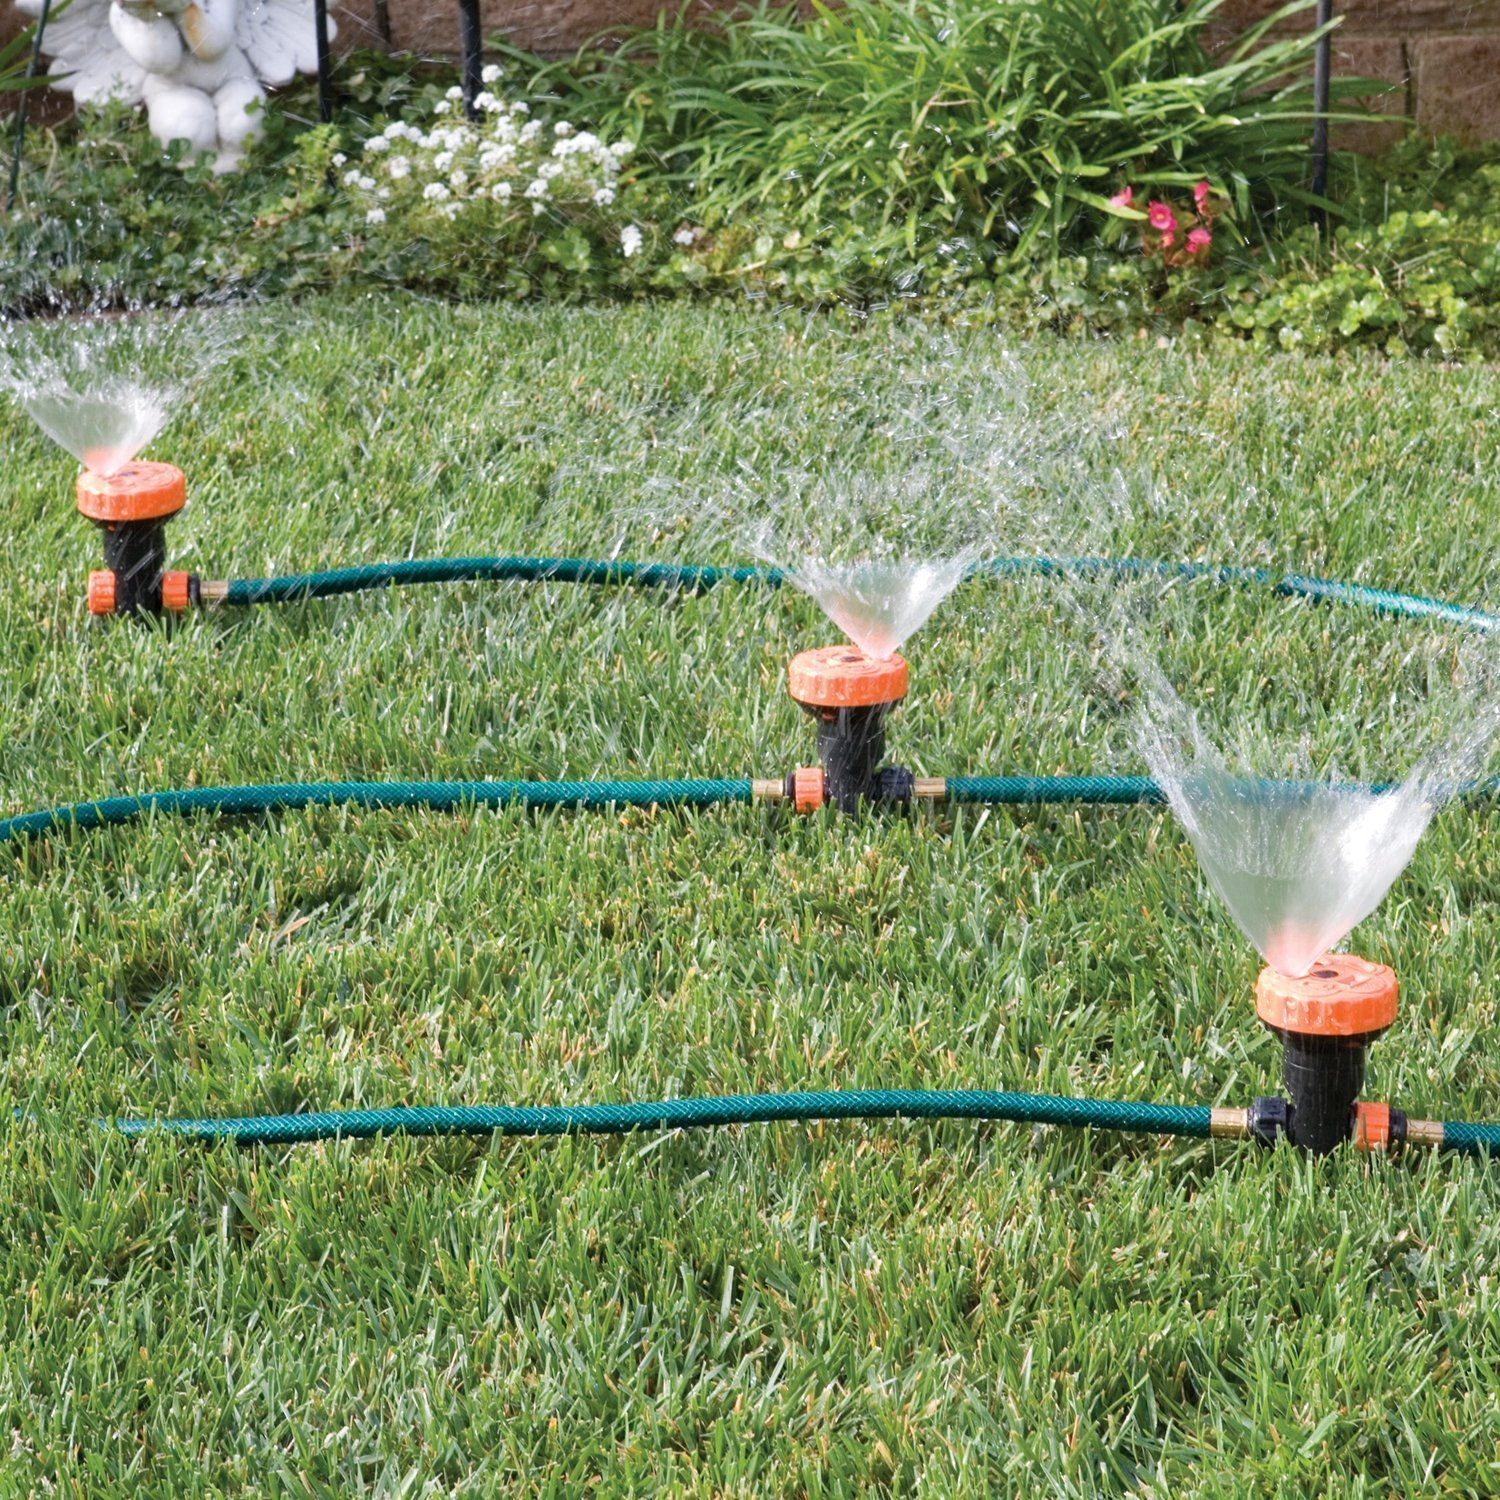 Amazon.com : 3 in 1 Portable Sprinkler System with 5 Spray Settings ...